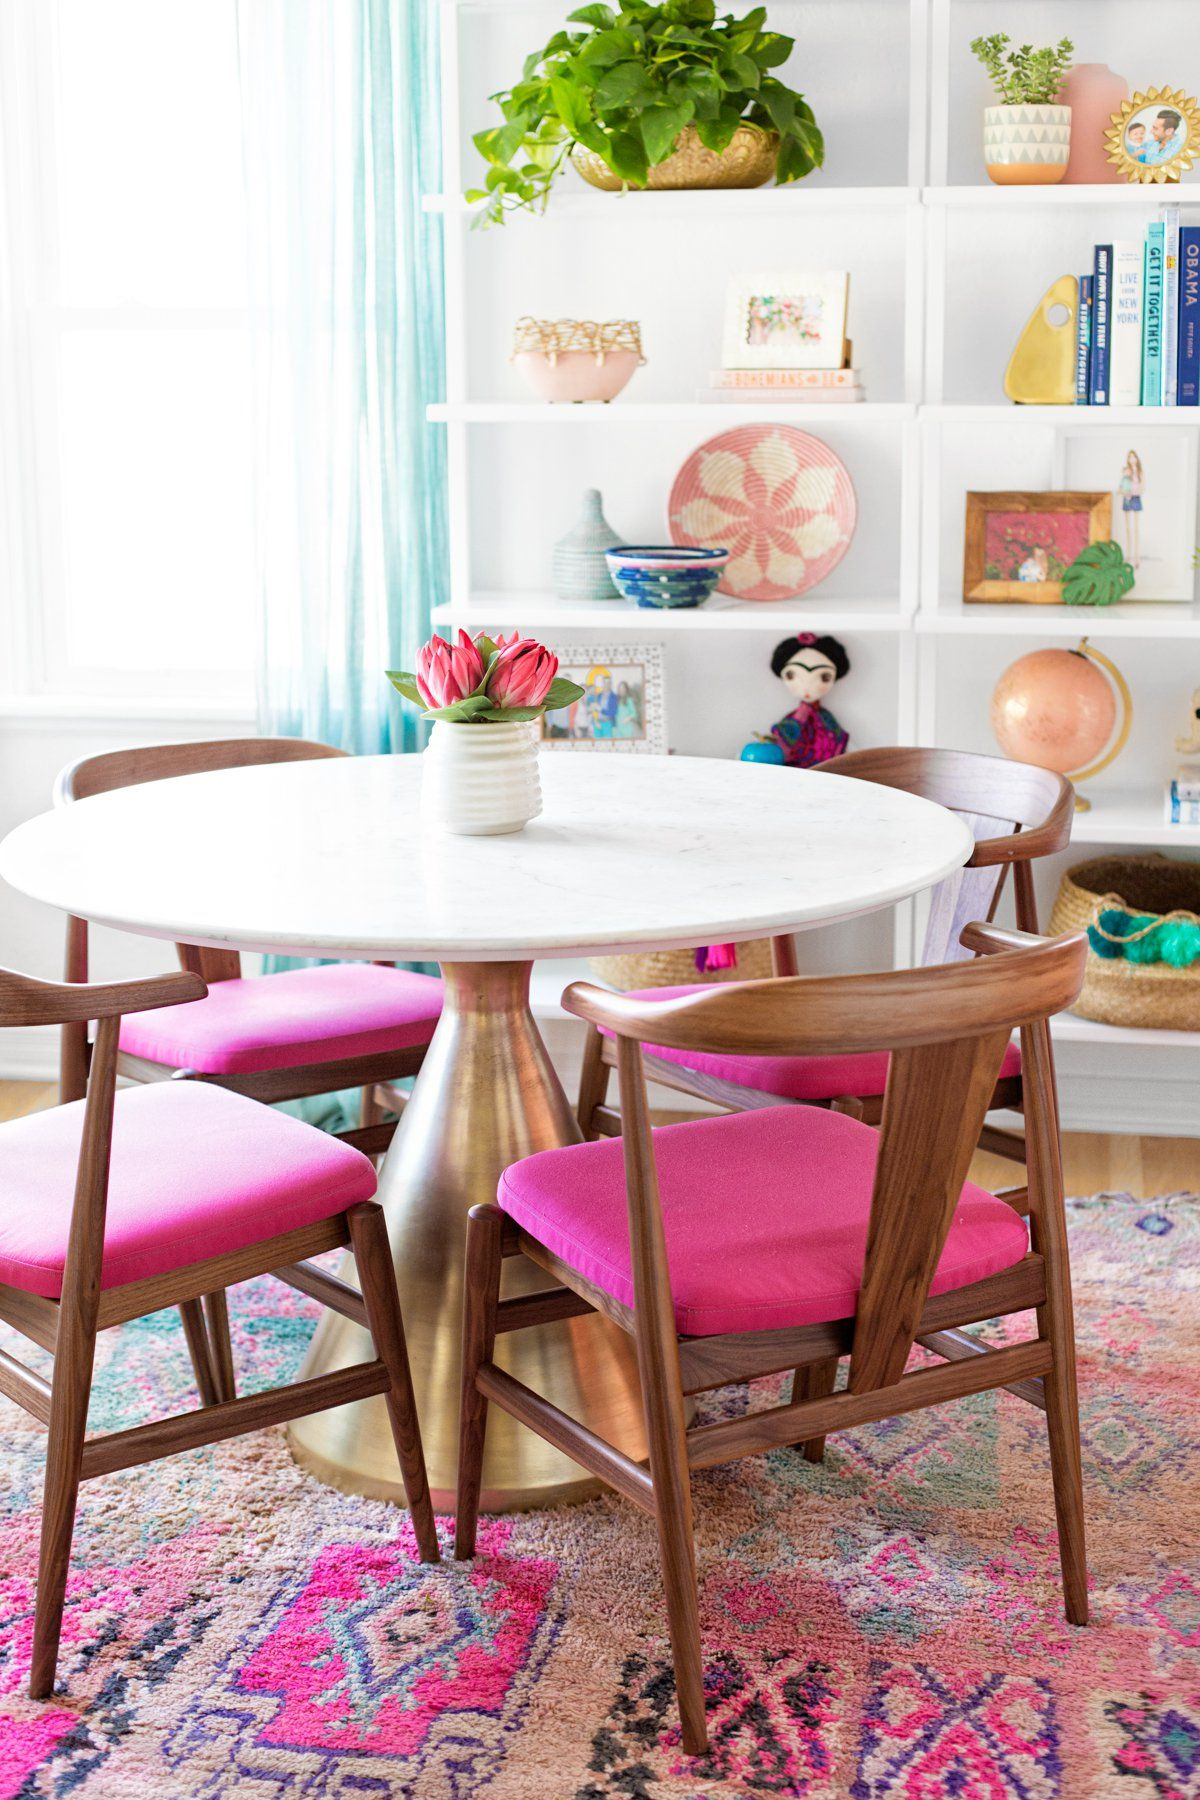 30 Round Dining Tables For Every Budget Dining Room Furniture